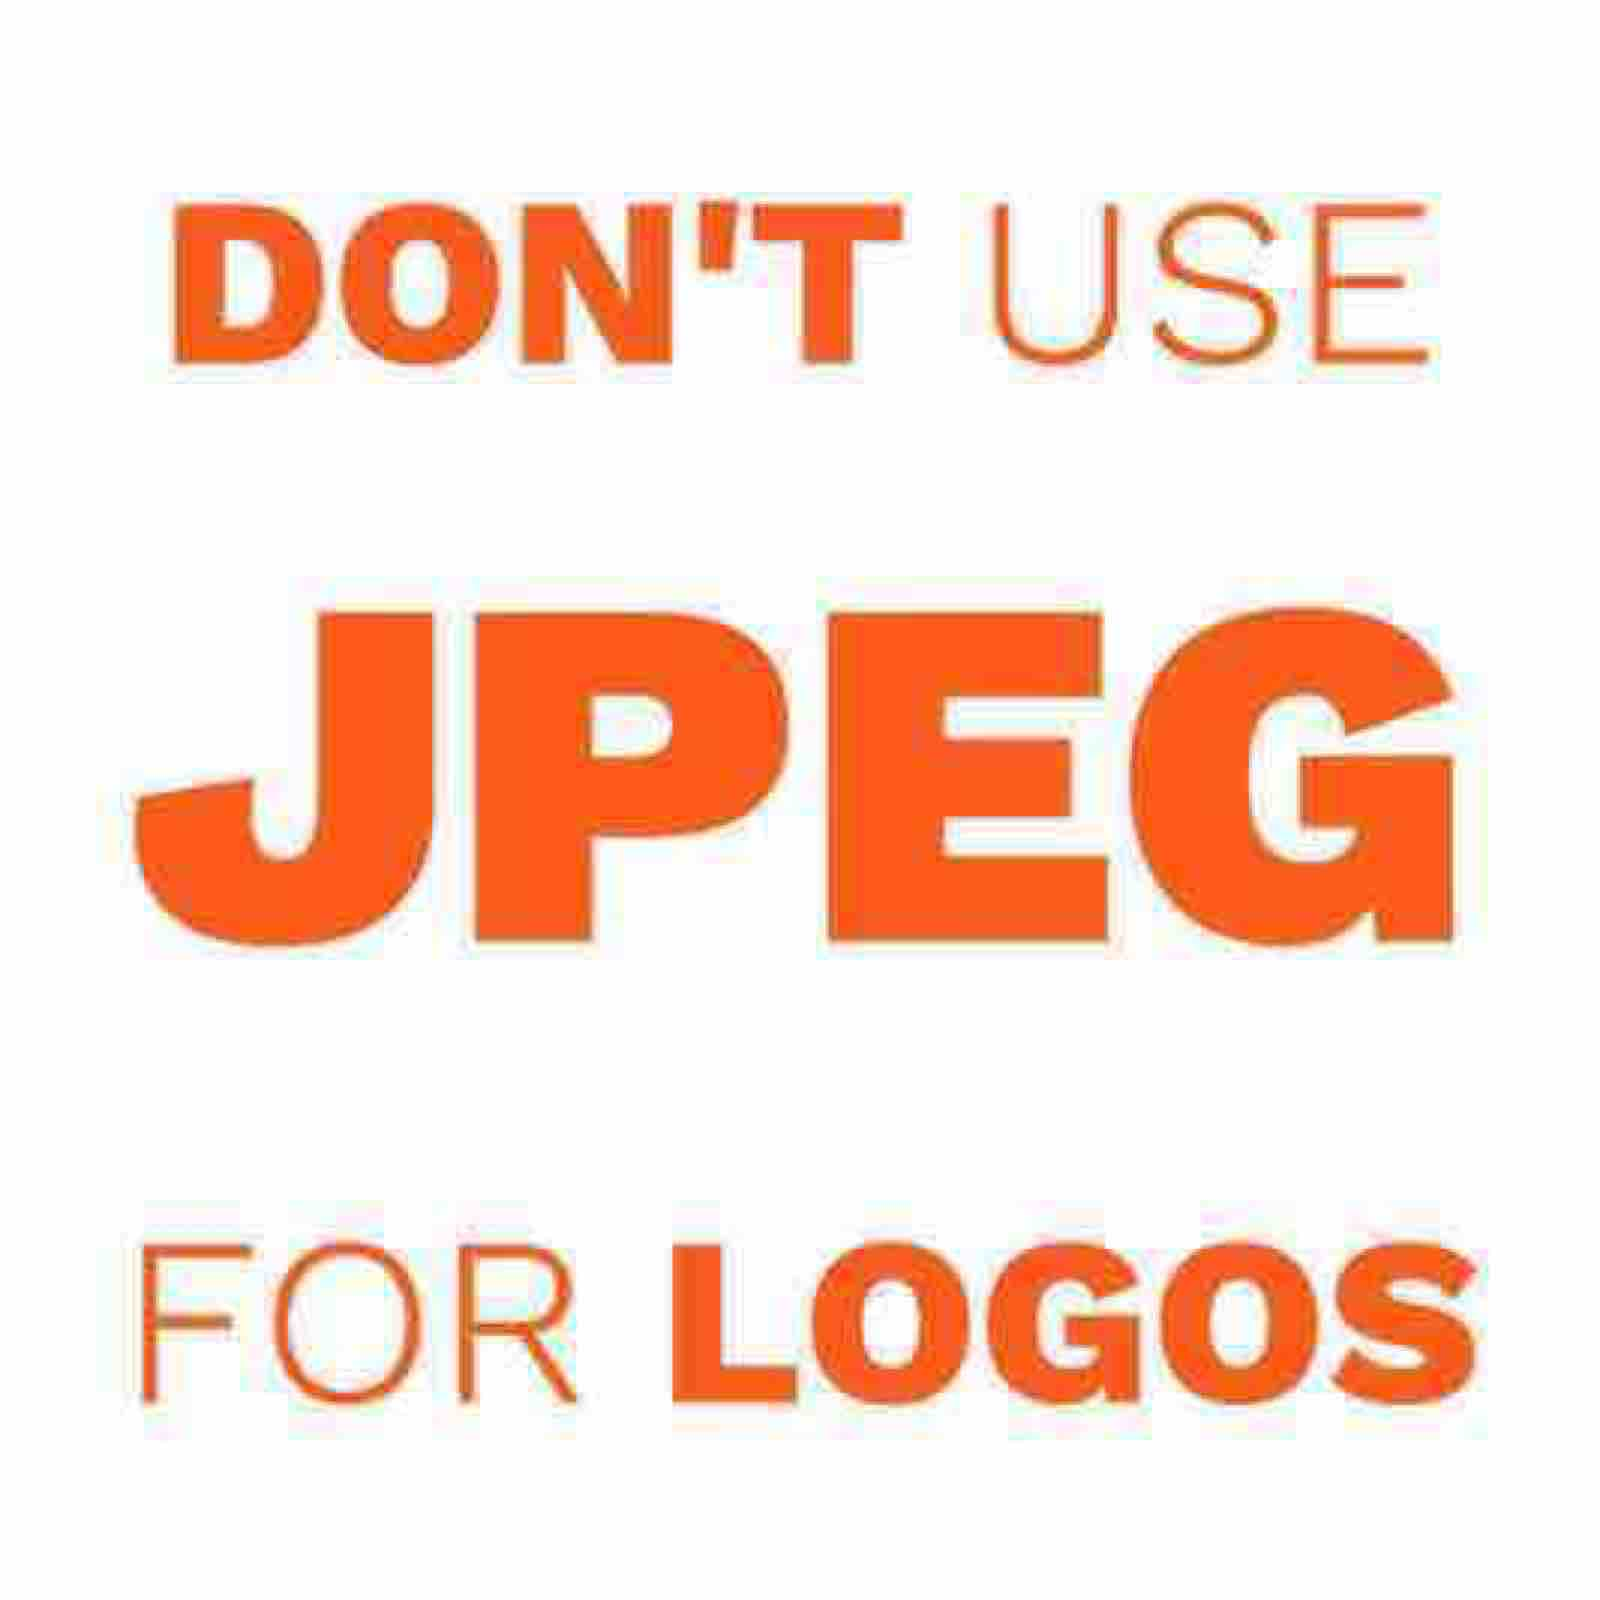 DON'T USE JPEG FOR LOGOS...